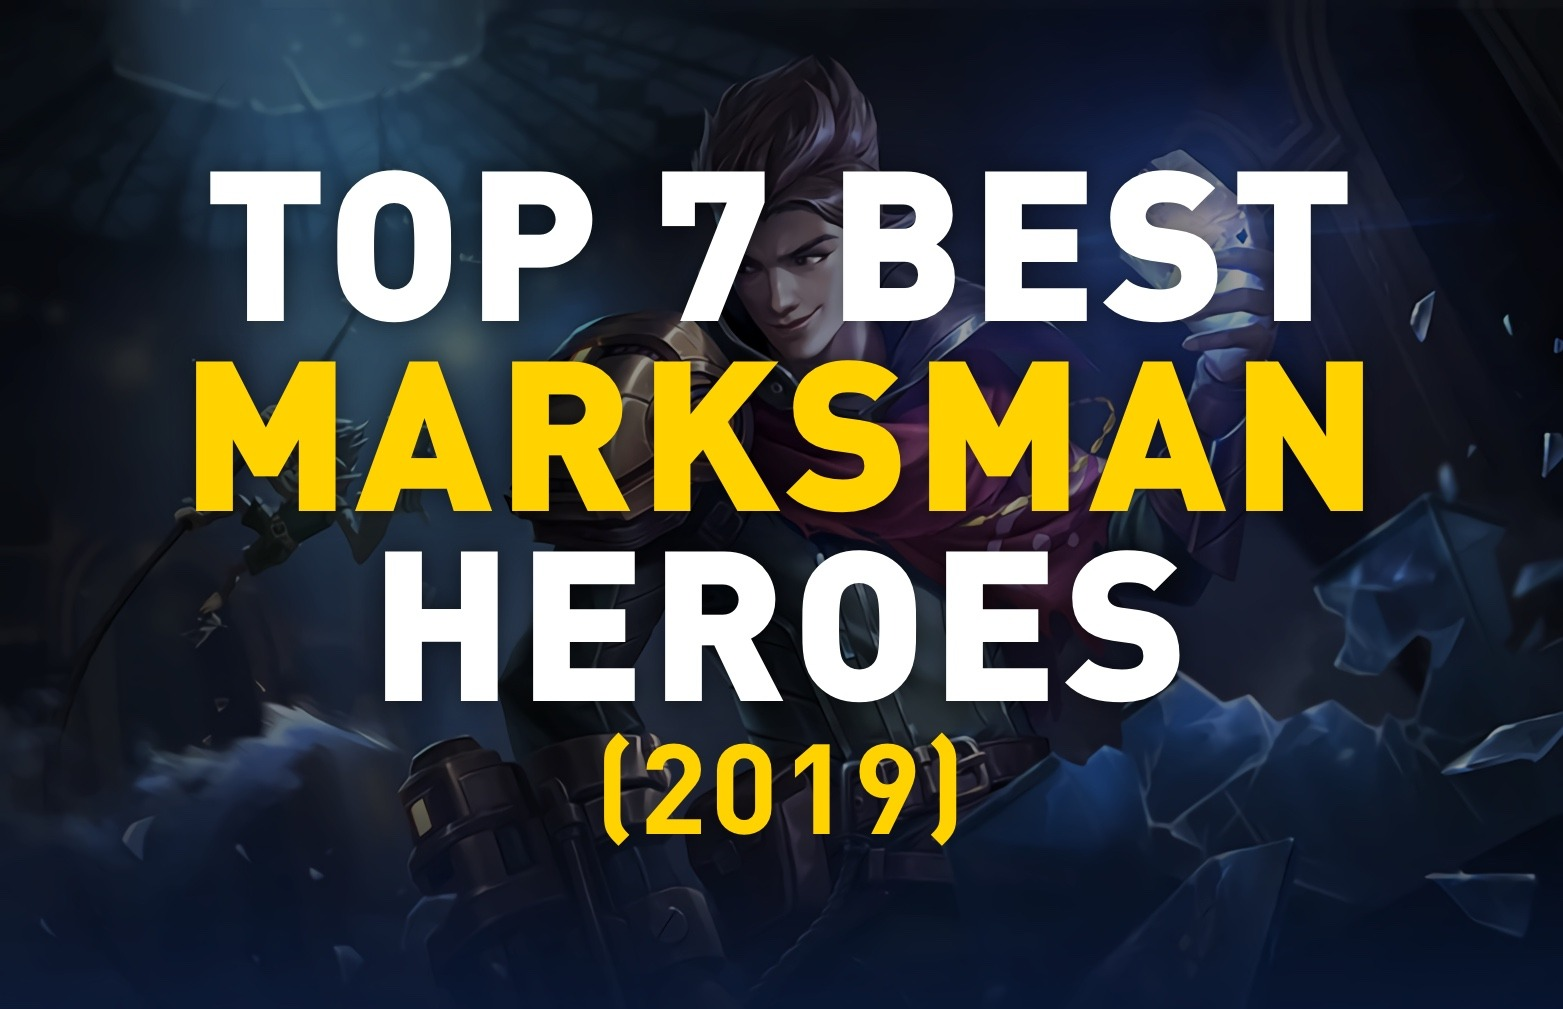 Top 7 Best Marksman Heroes in Mobile Legends [2020]